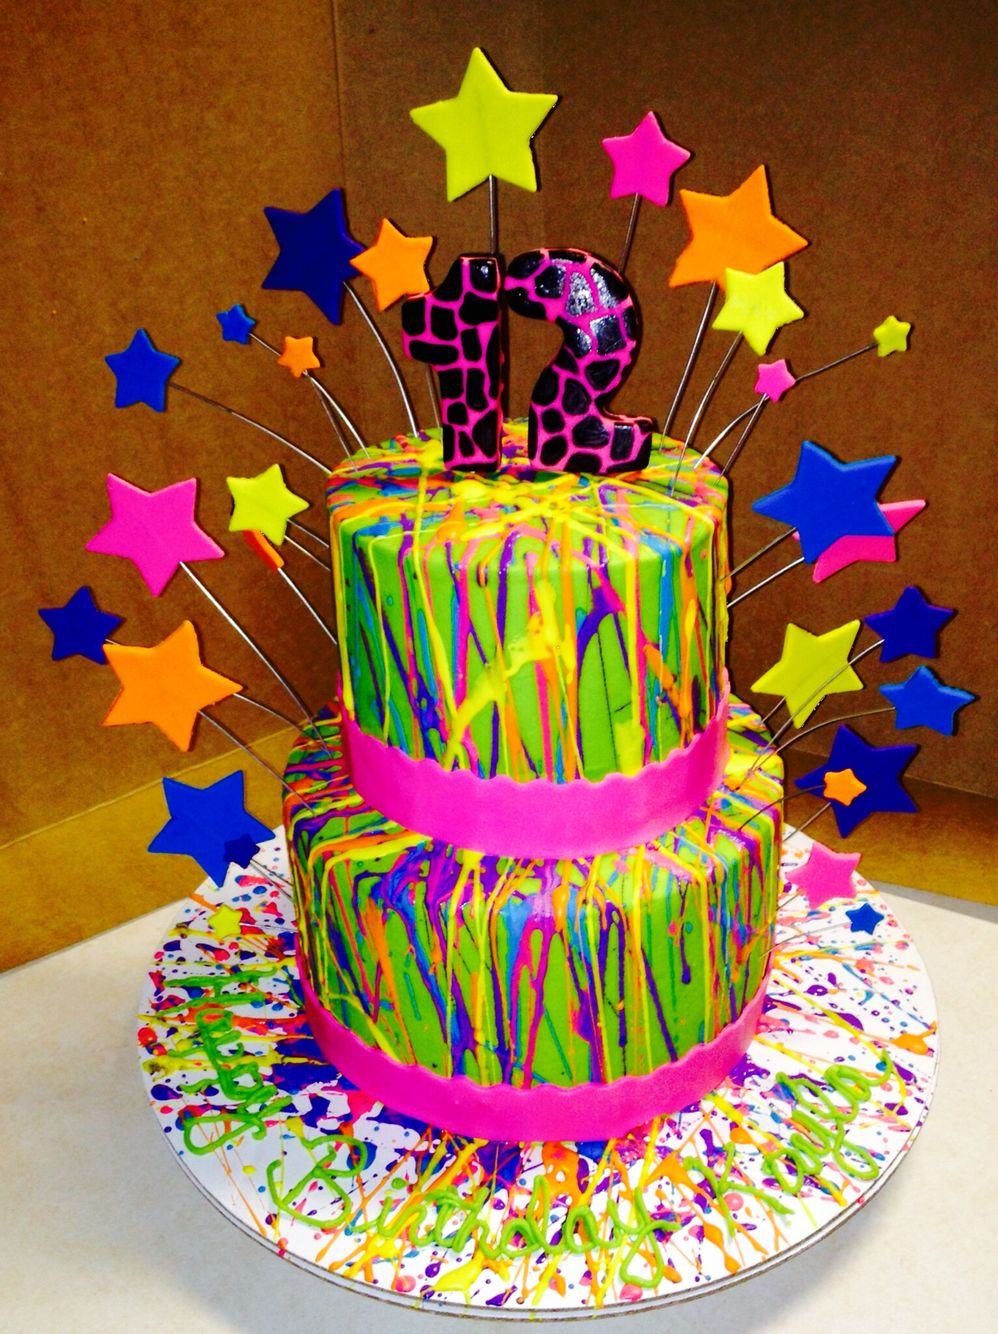 Neon Buttercream Splatter Cake My Creations Pinterest Neon